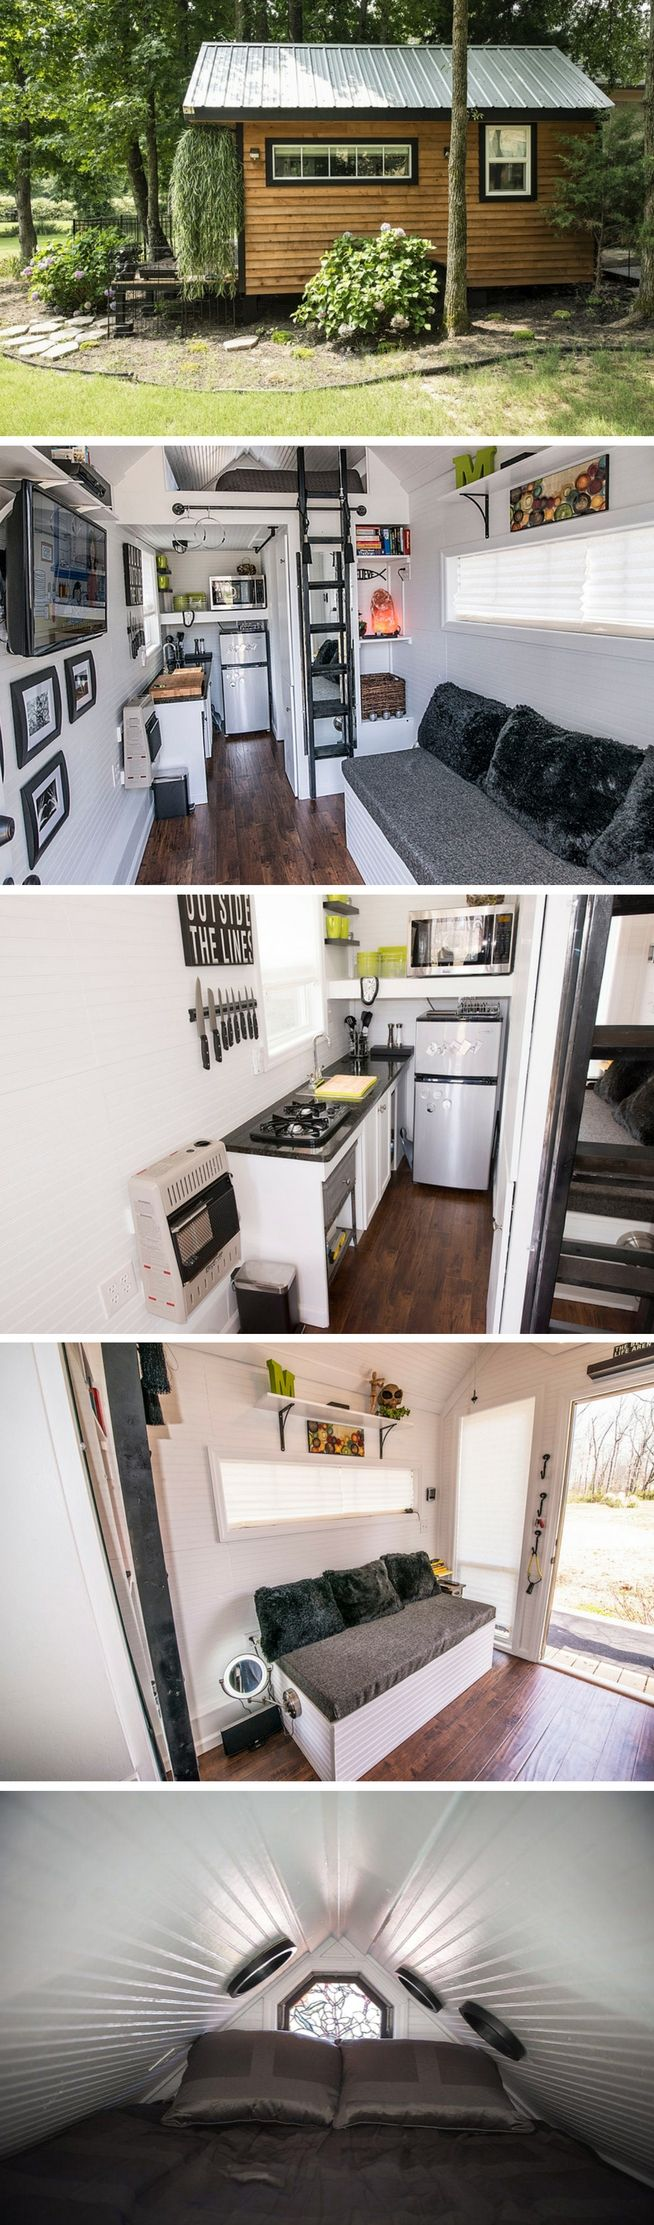 Mendy's Tiny Home, a tiny house on wheels measuring just 128 sq ft